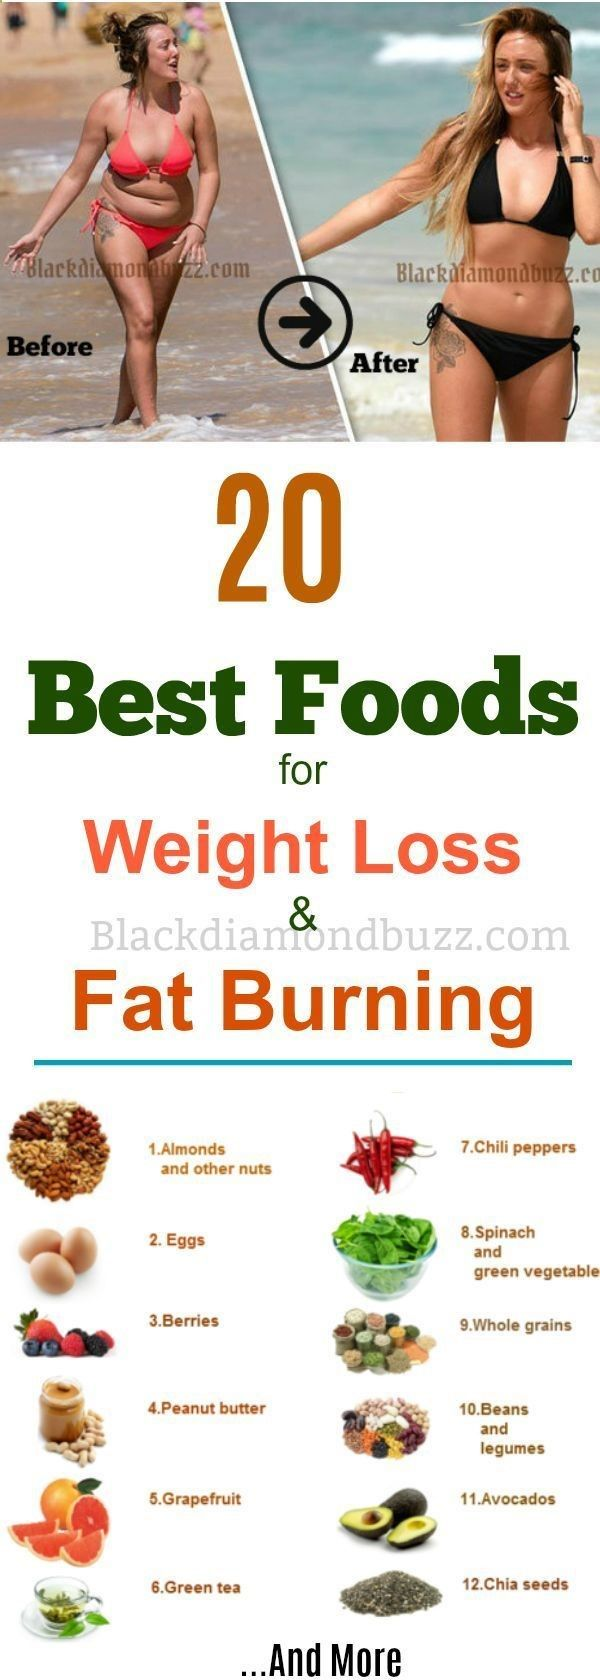 How to lose weight in 7 months photo 7